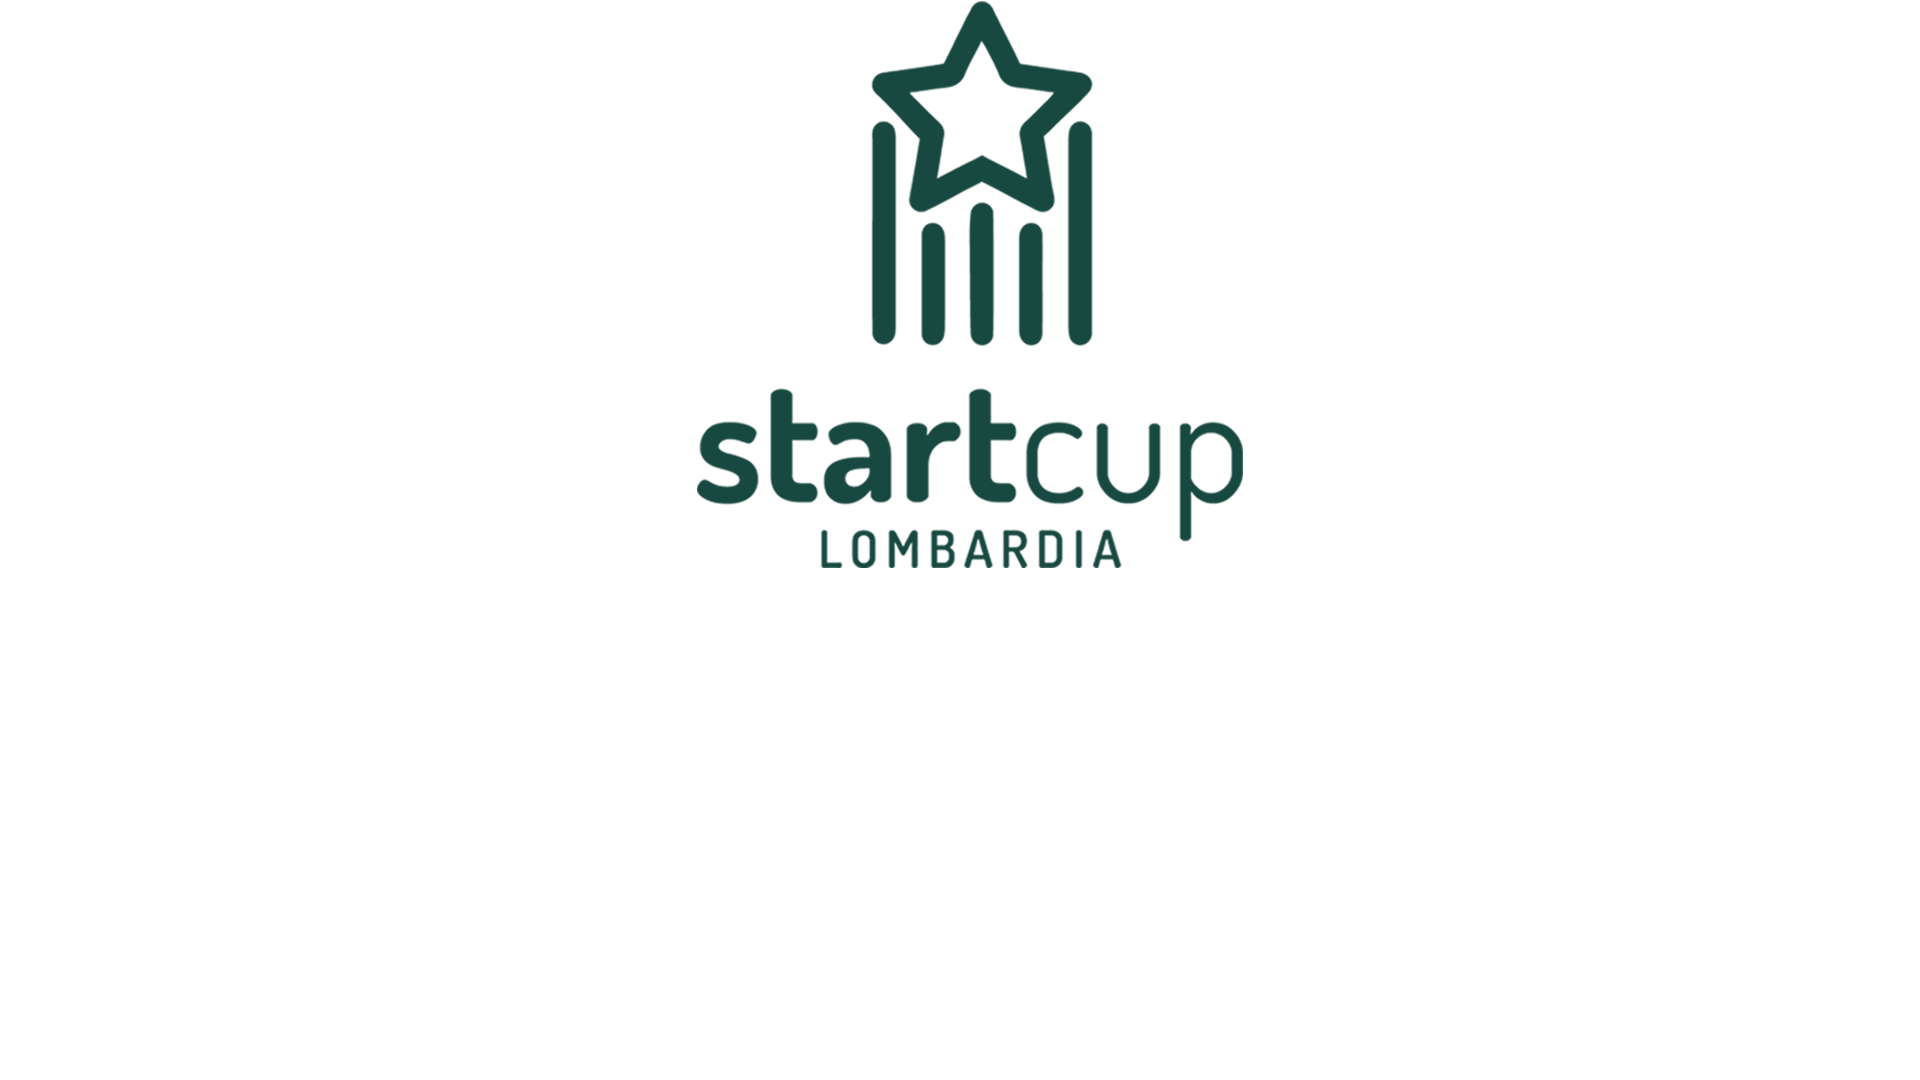 StartCup Lombardia 2020